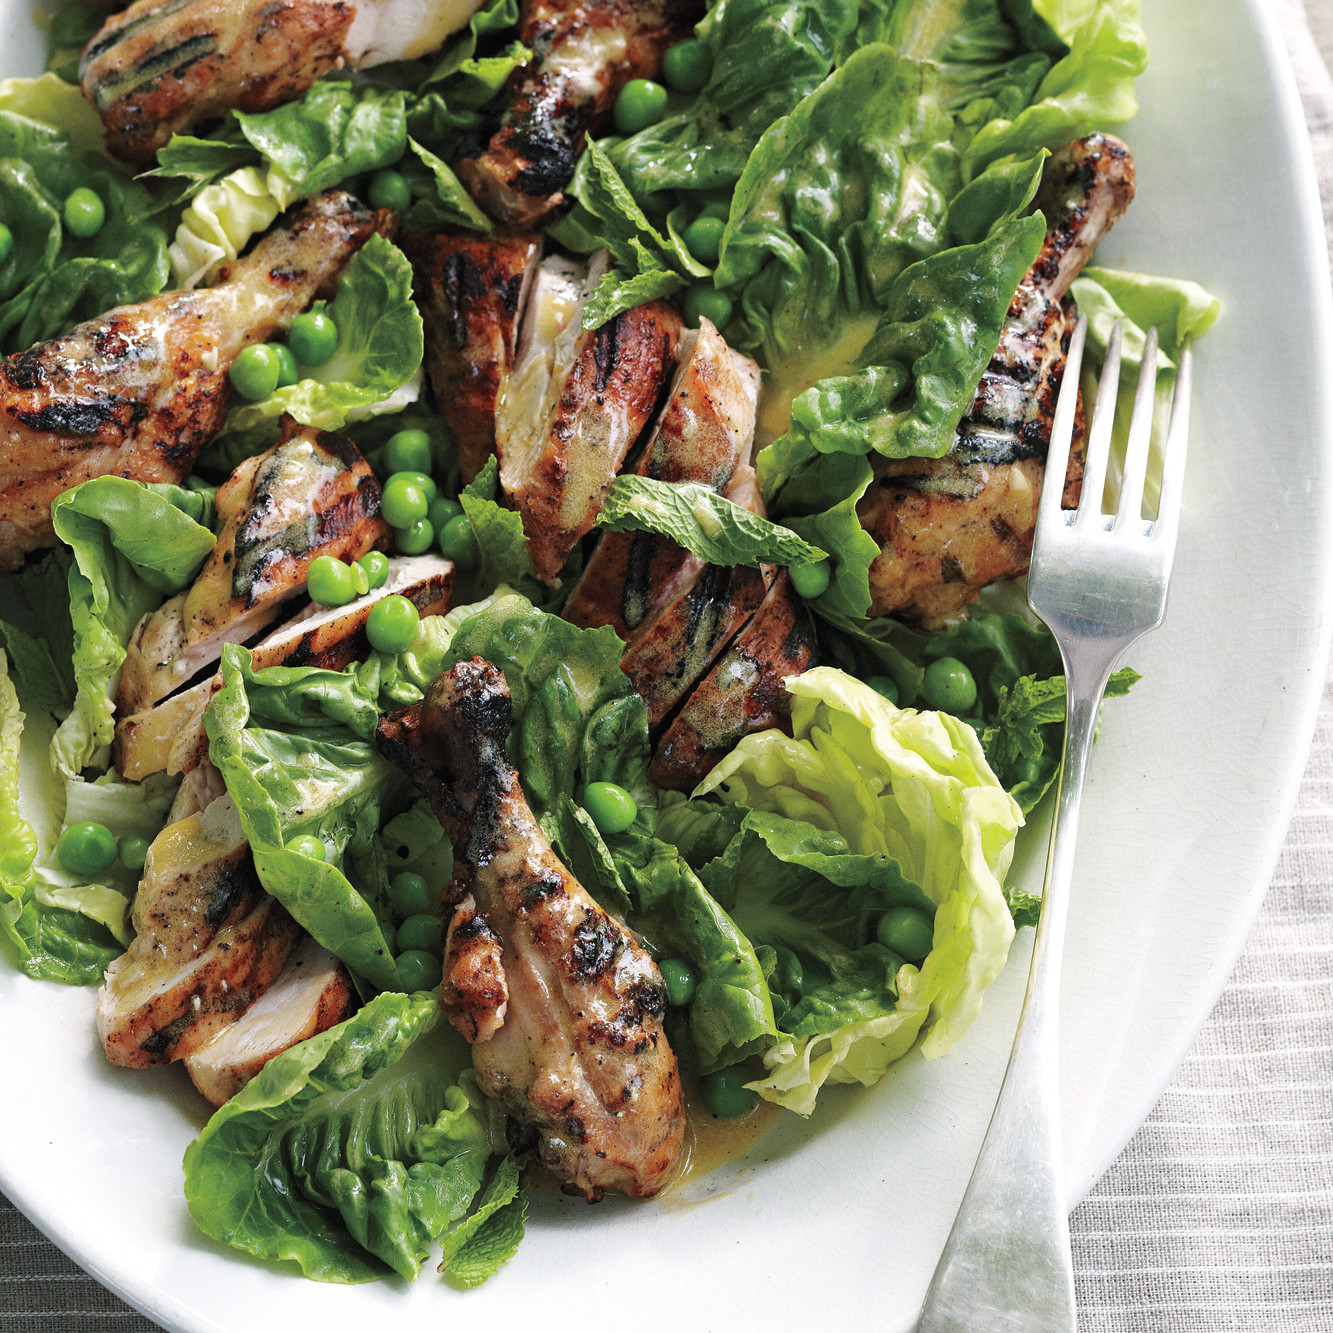 Grilled chicken salad recipes dinocrofo grilled chicken caesar salad recipe food network forumfinder Choice Image